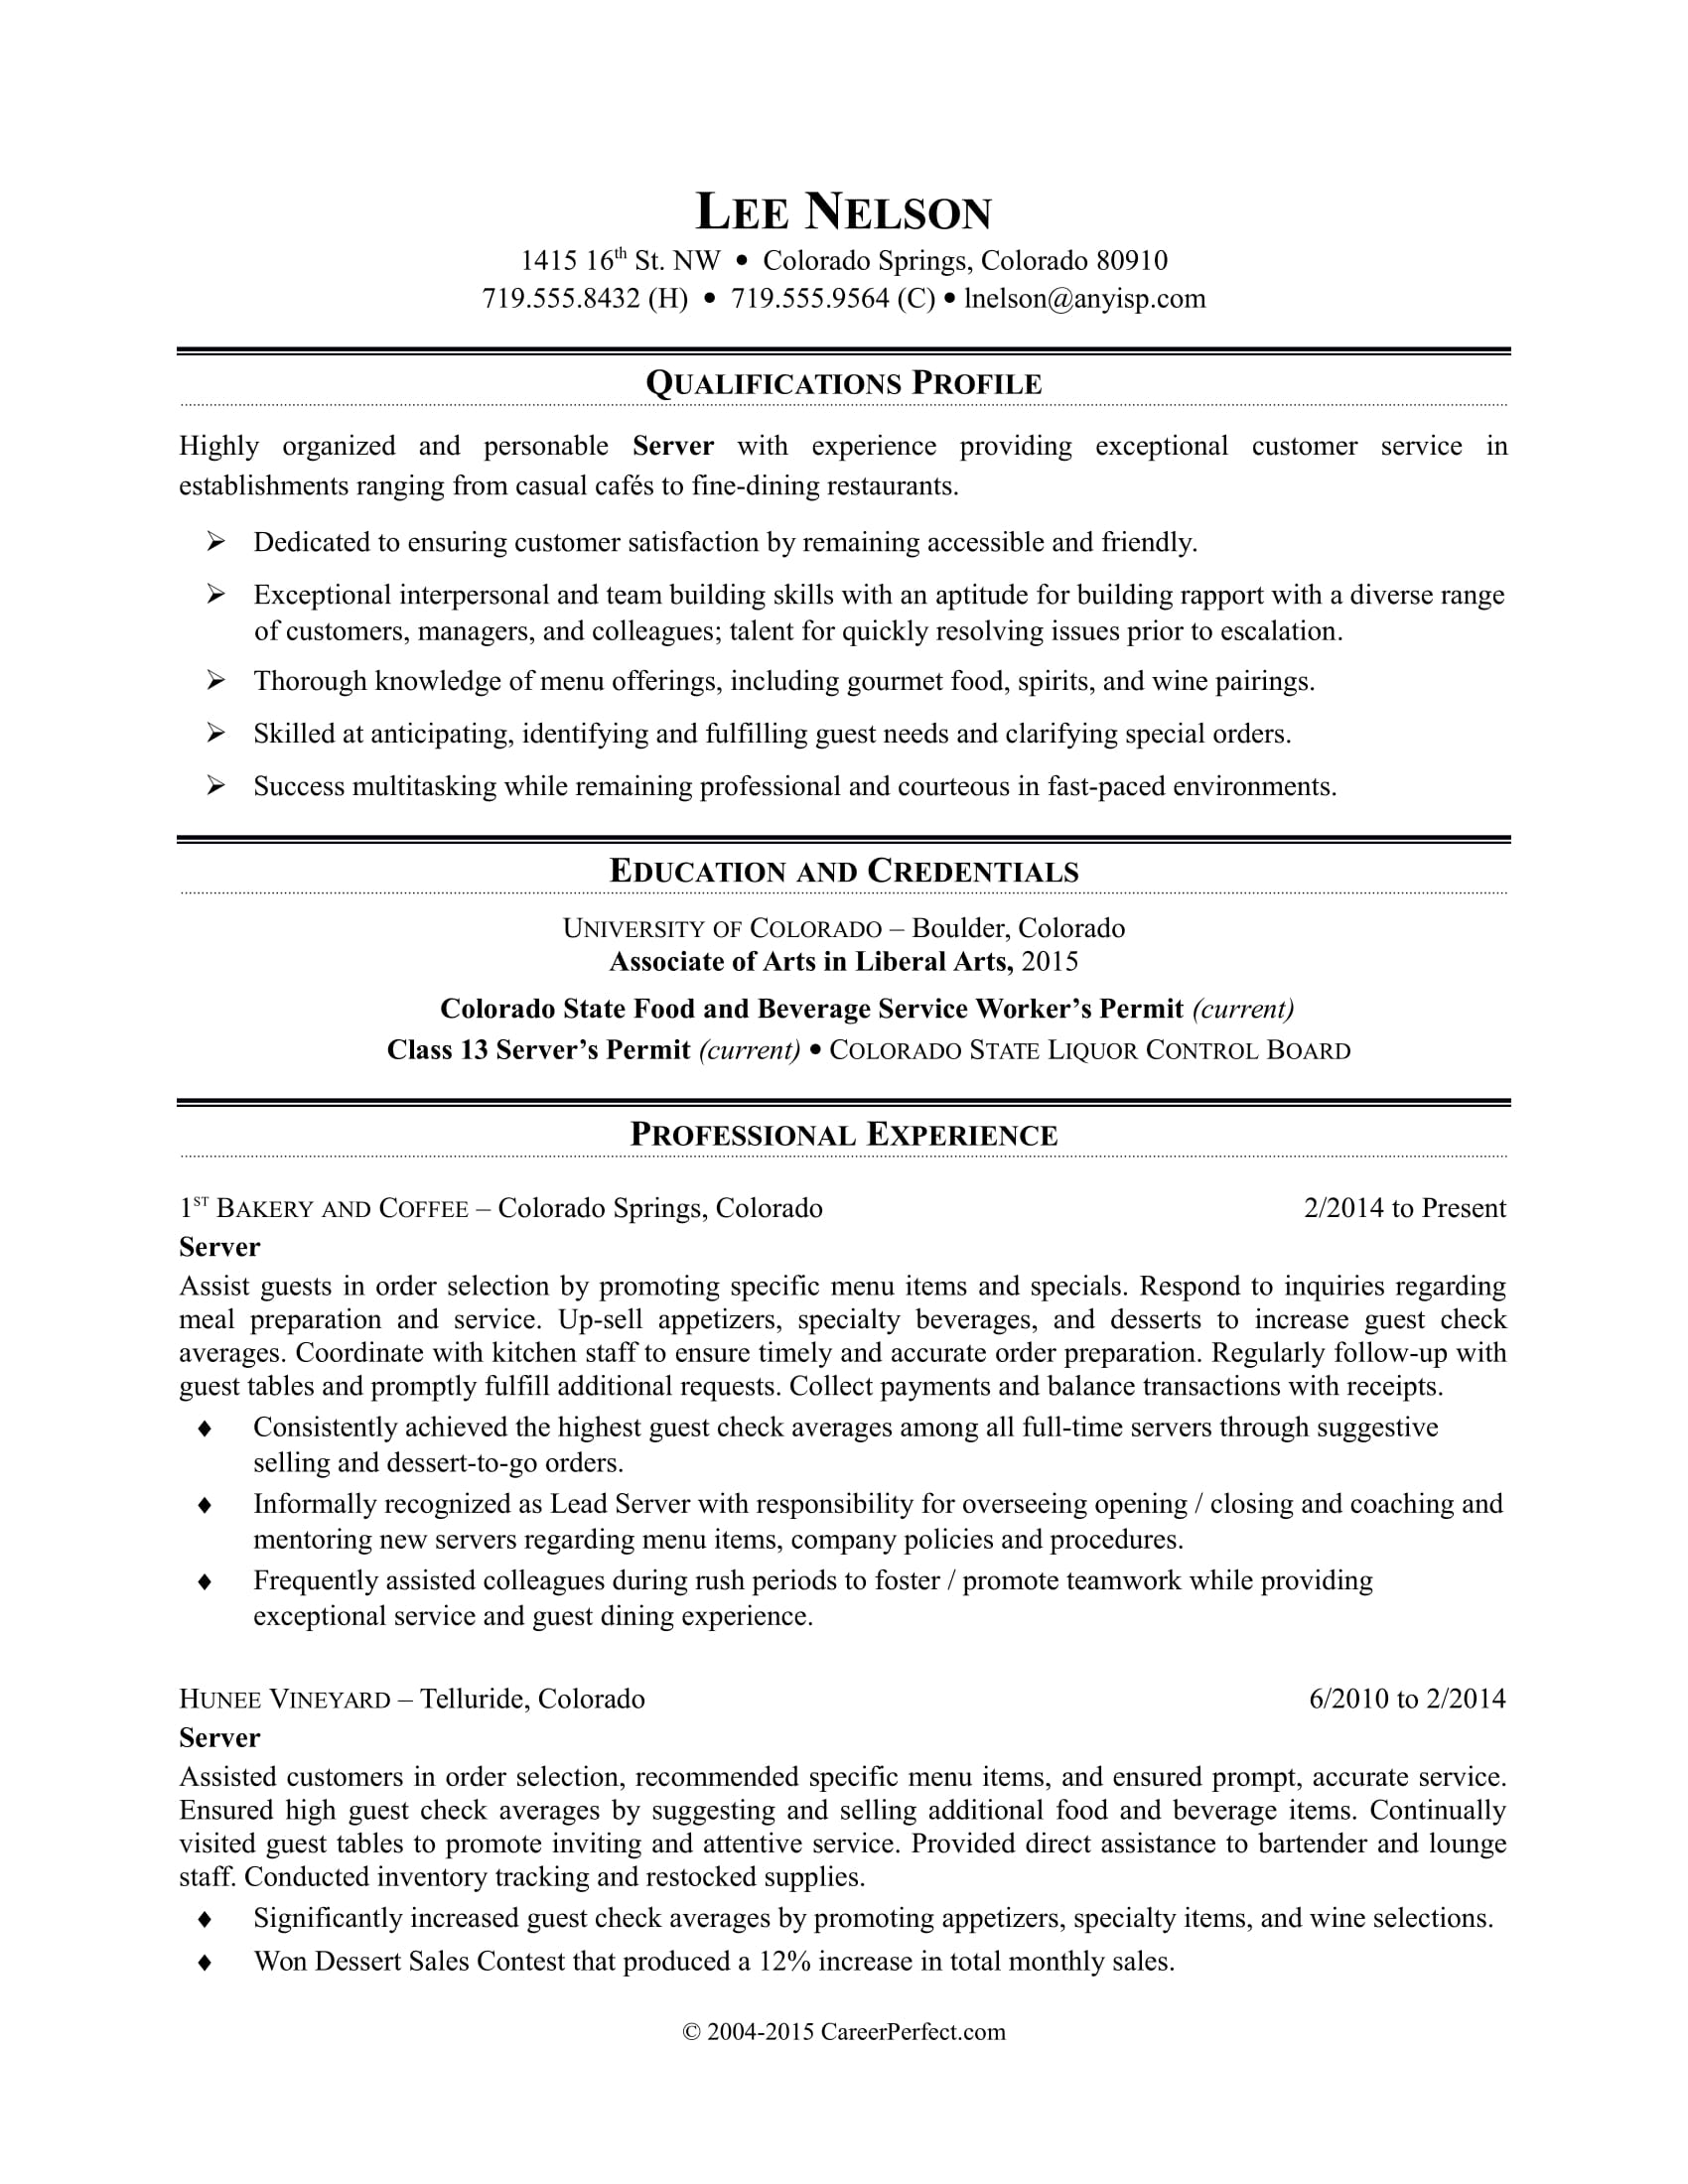 restaurant server resume sample monster customer service bullet points retail shift Resume Customer Service Resume Bullet Points